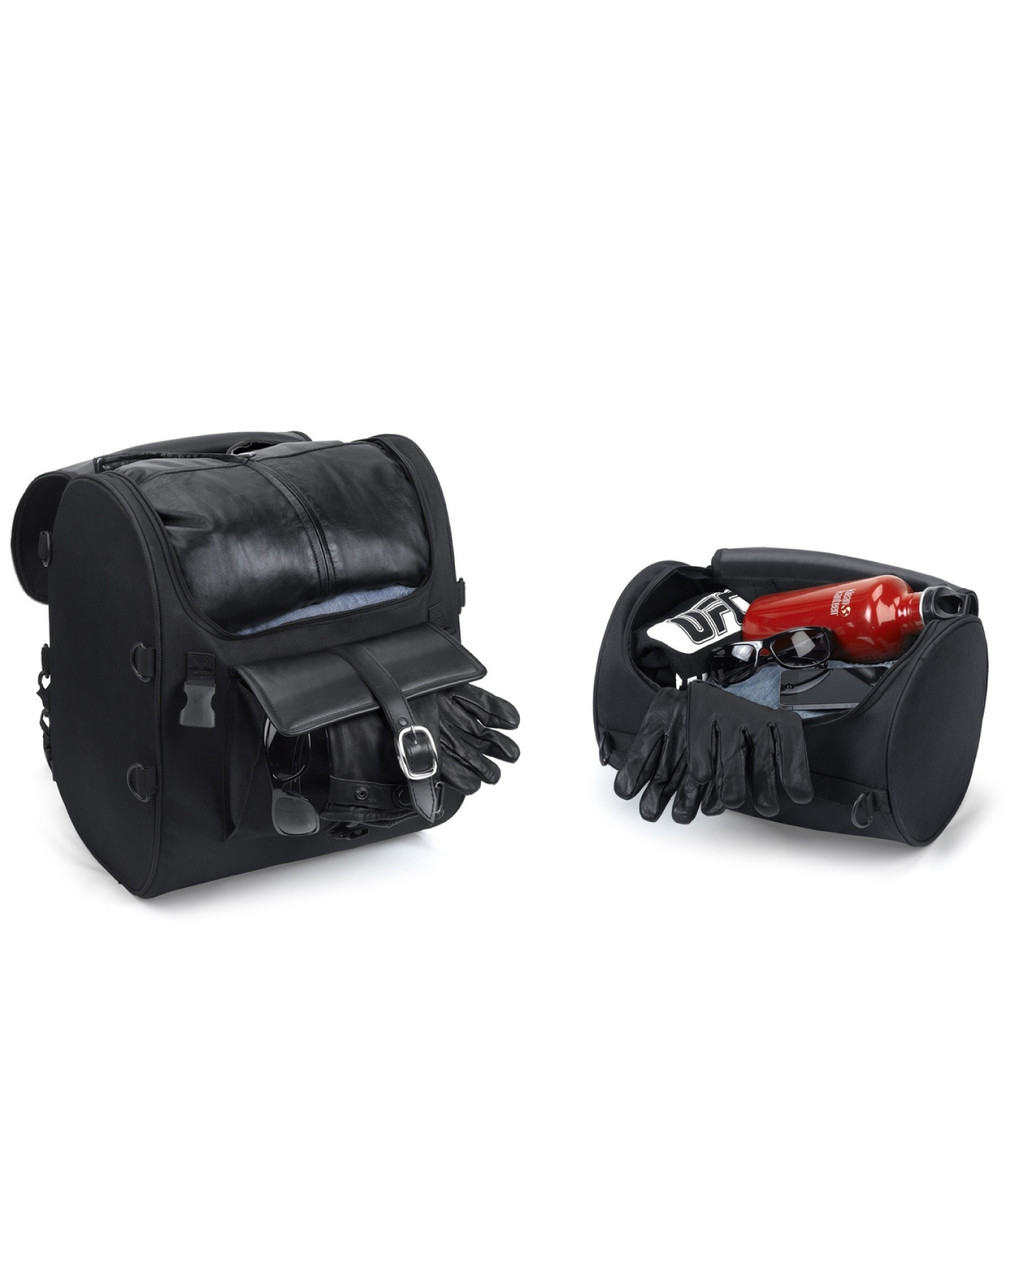 Viking Economy Line Motorcycle Sissy Bar Bag With roll bag